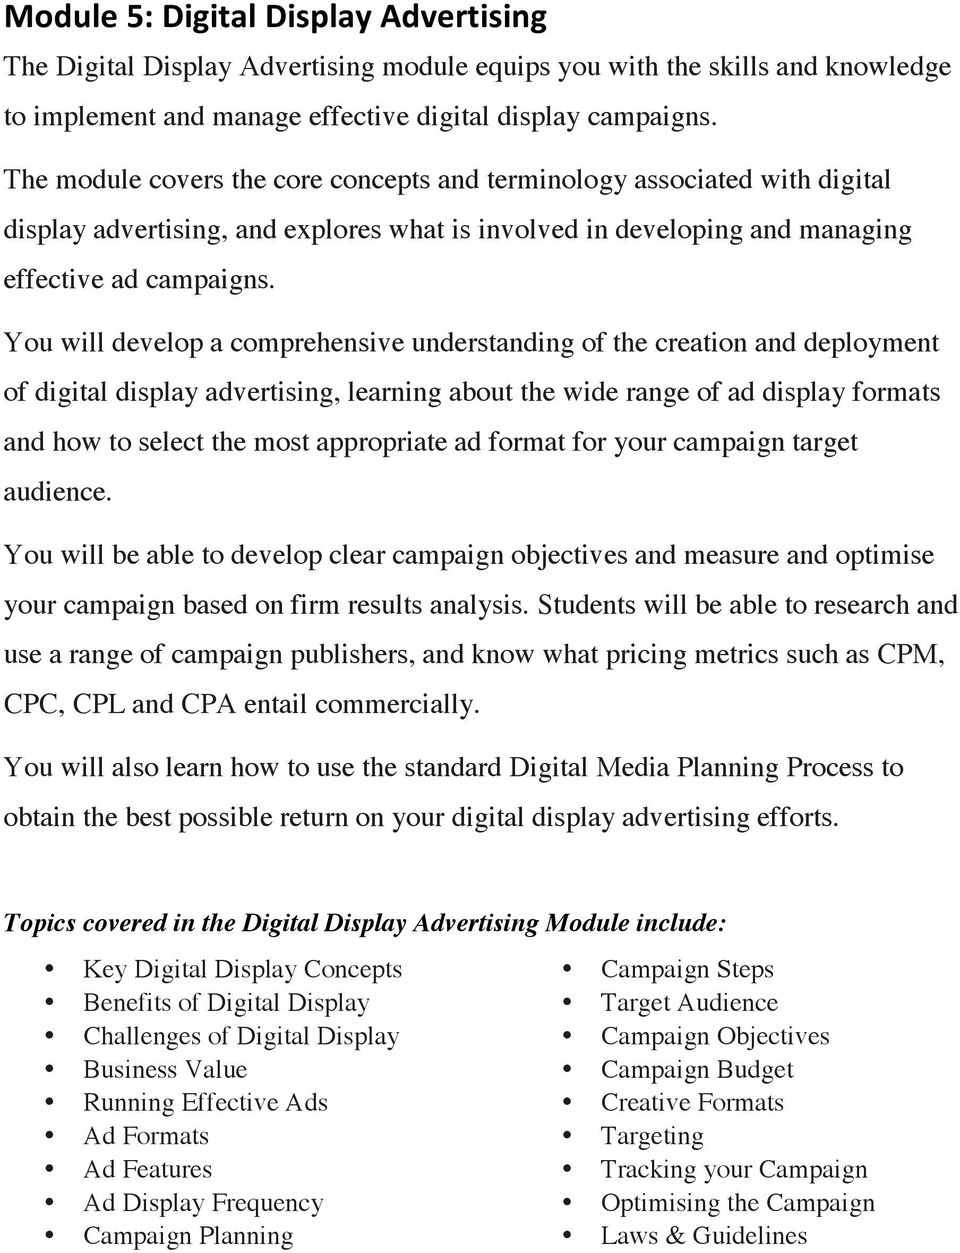 You will develop a comprehensive understanding of the creation and deployment of digital display advertising, learning about the wide range of ad display formats and how to select the most